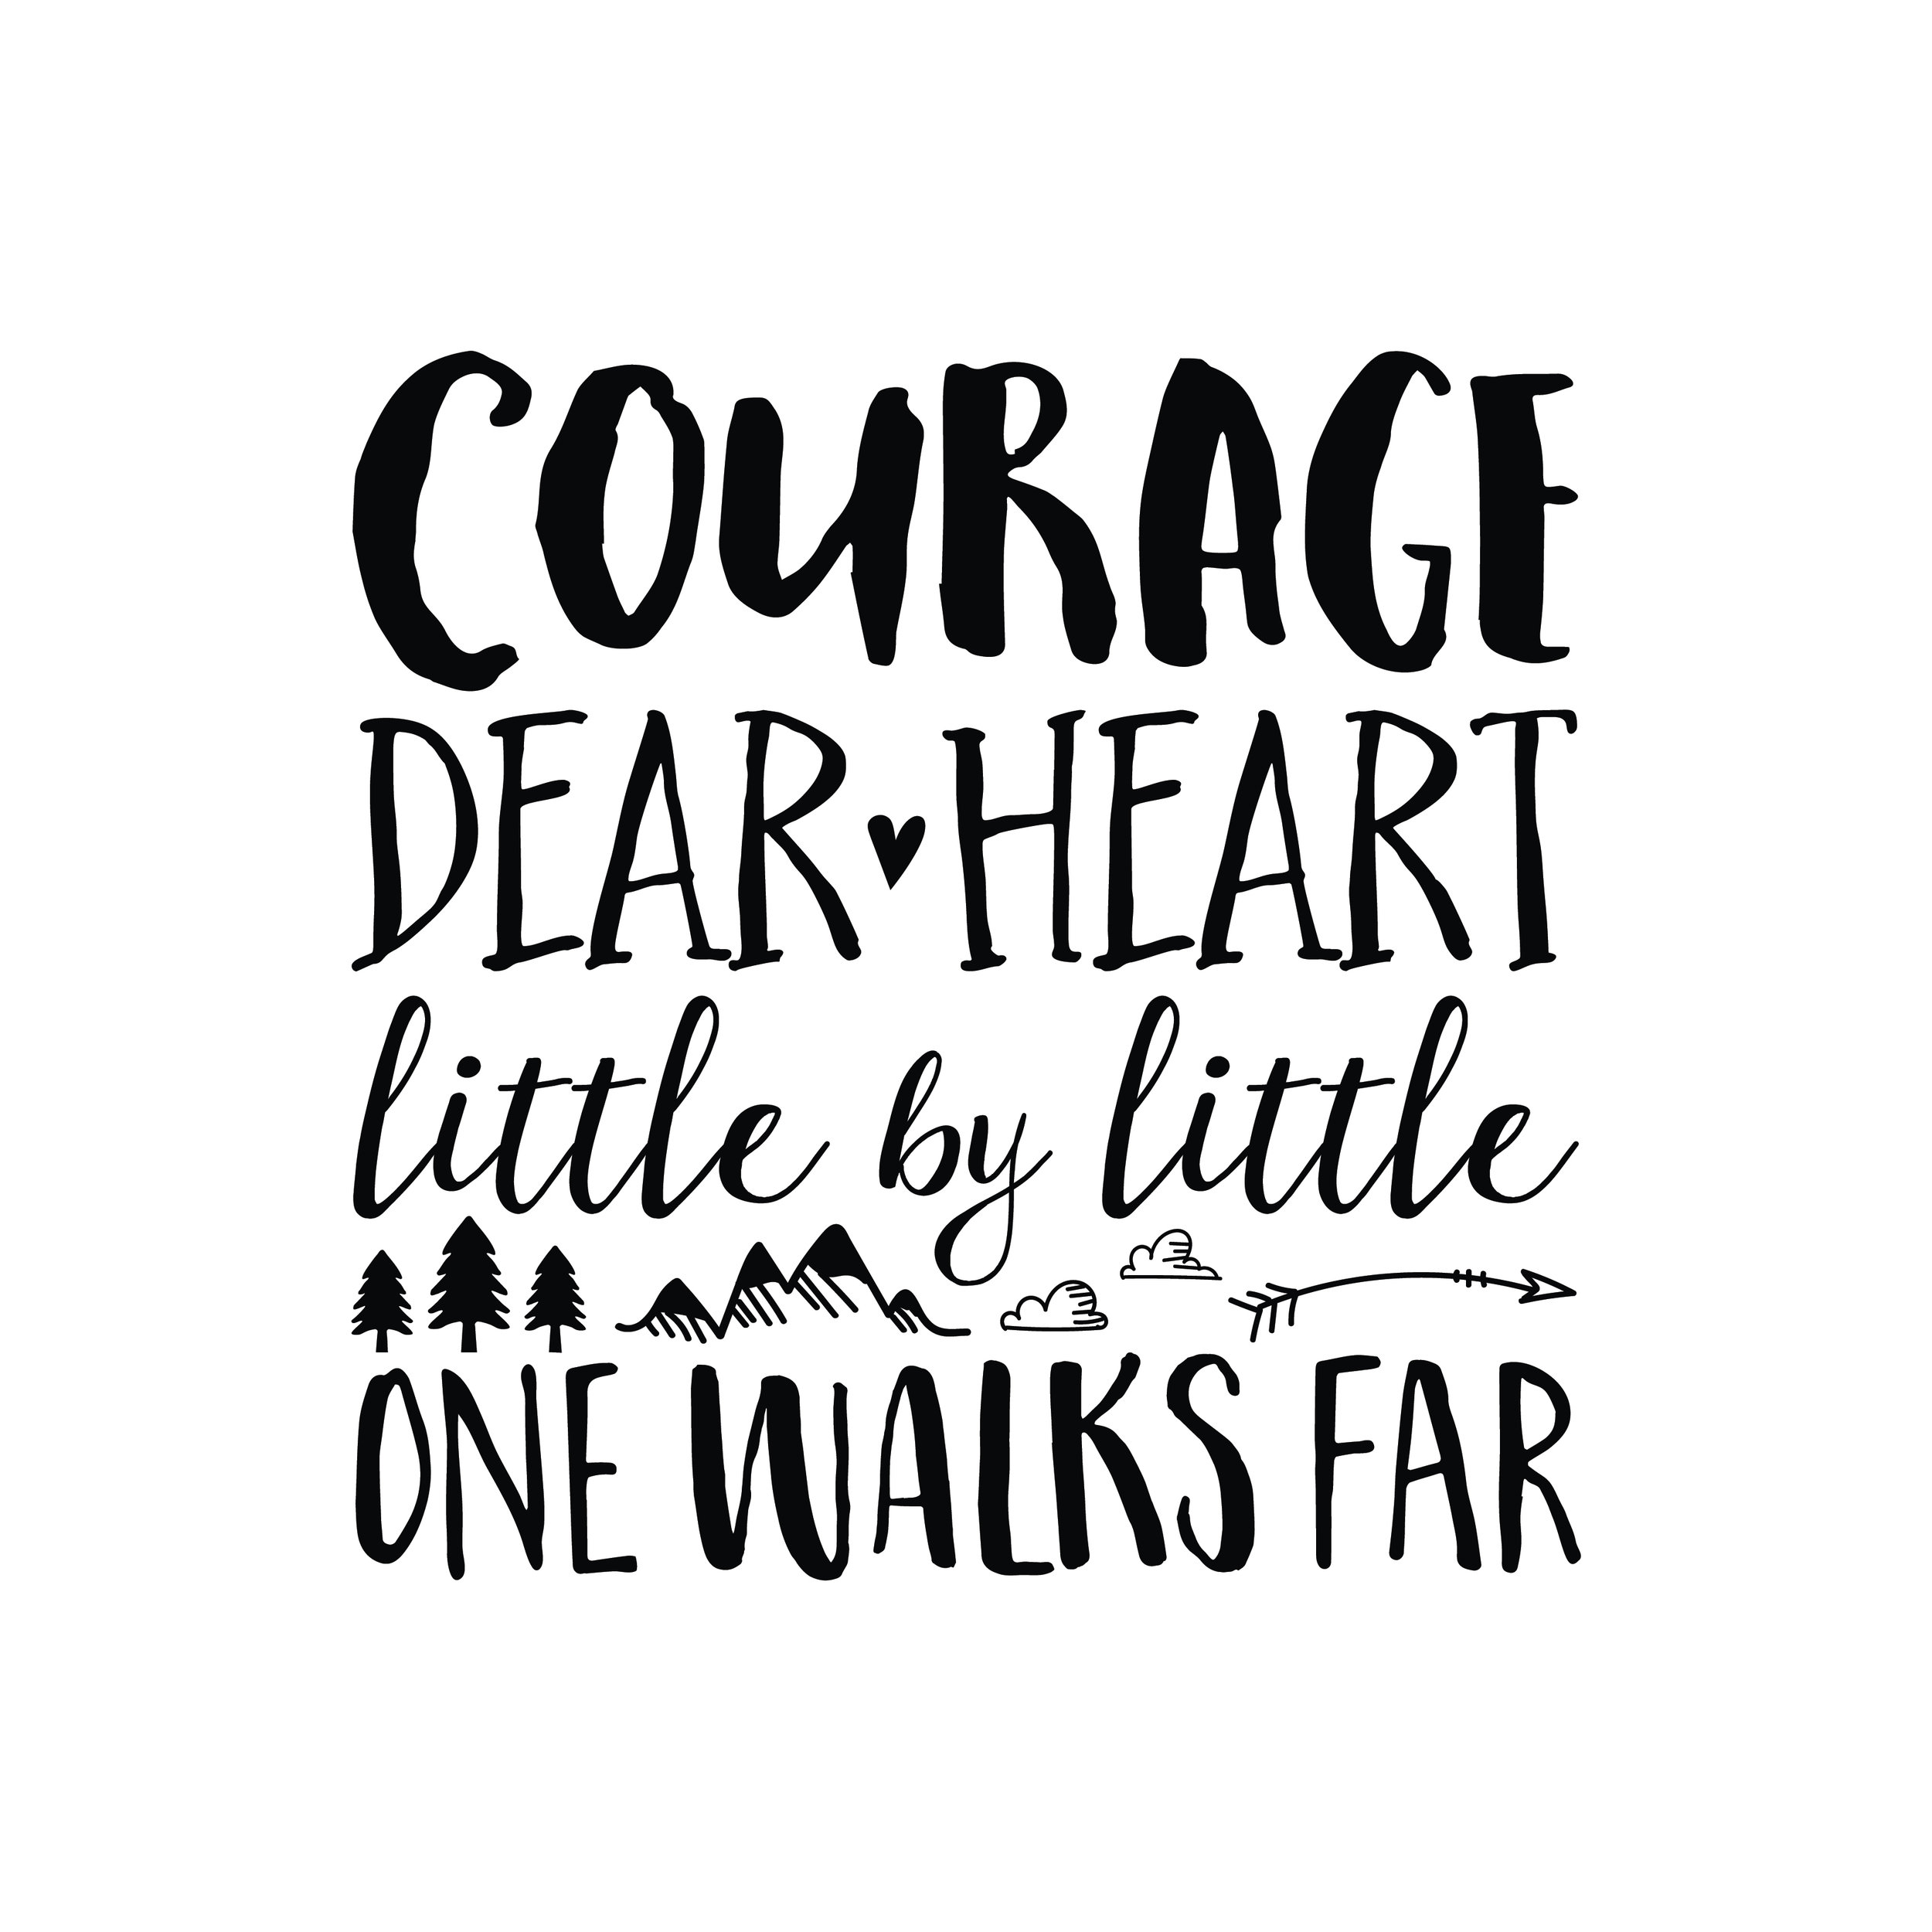 CT4558-Courage-dear-heart-little-by-little-one-walks-far-peruvian-proverb-APROOF.jpg